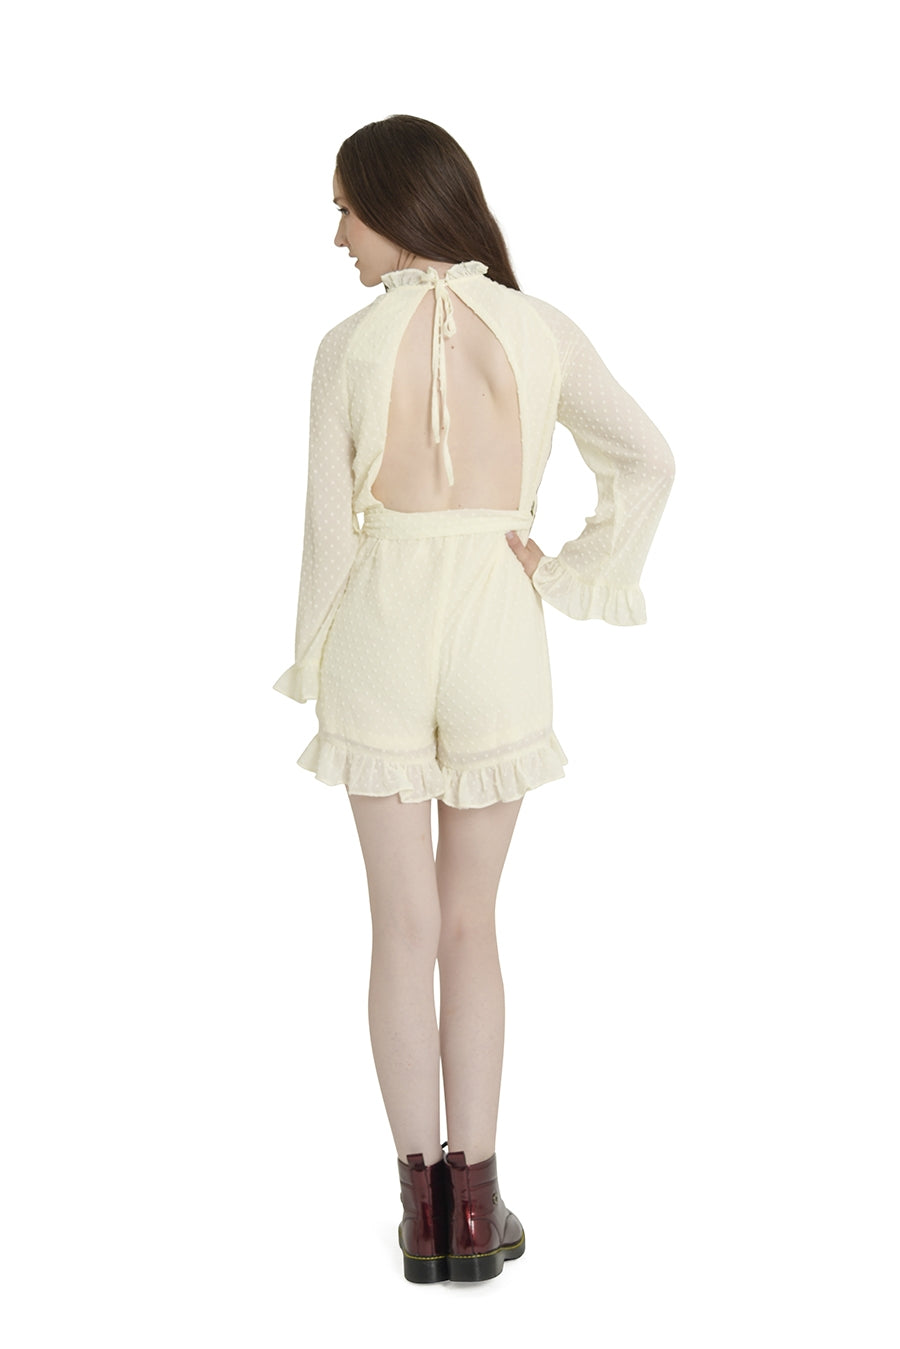 PLAYSUIT FY8826